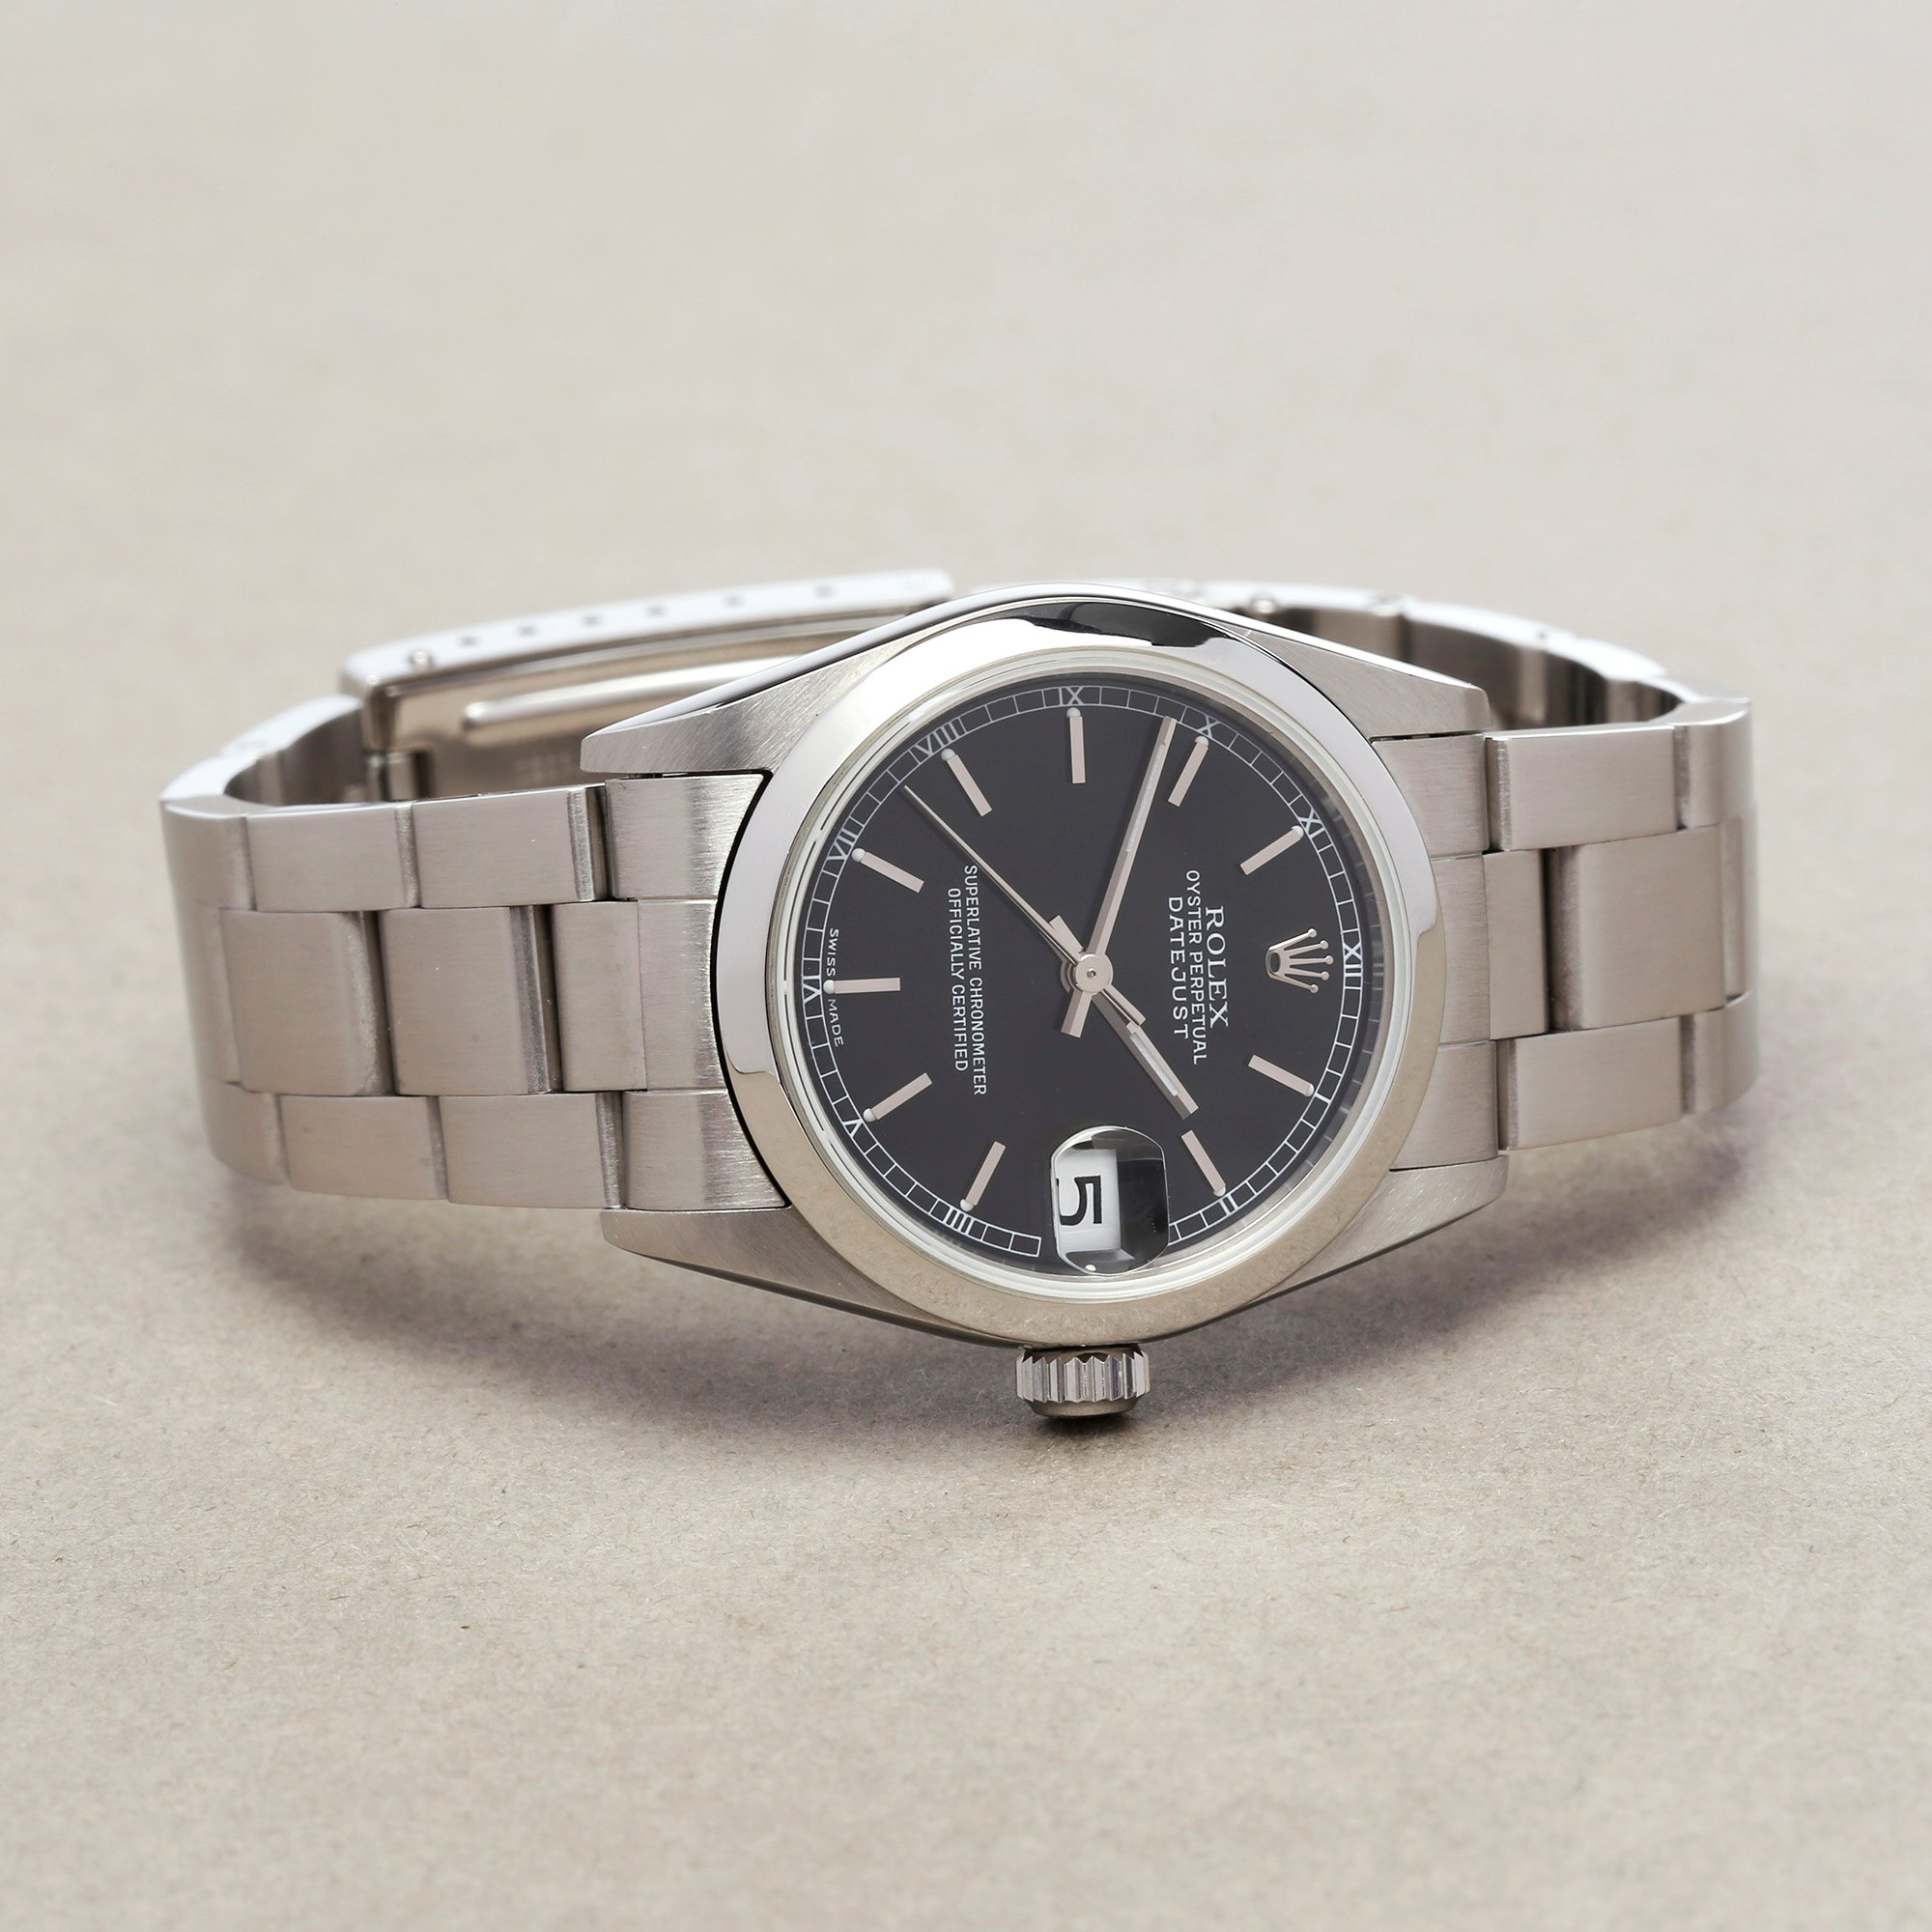 Rolex Datejust 31 78240 Ladies Stainless Steel Watch - Image 10 of 10